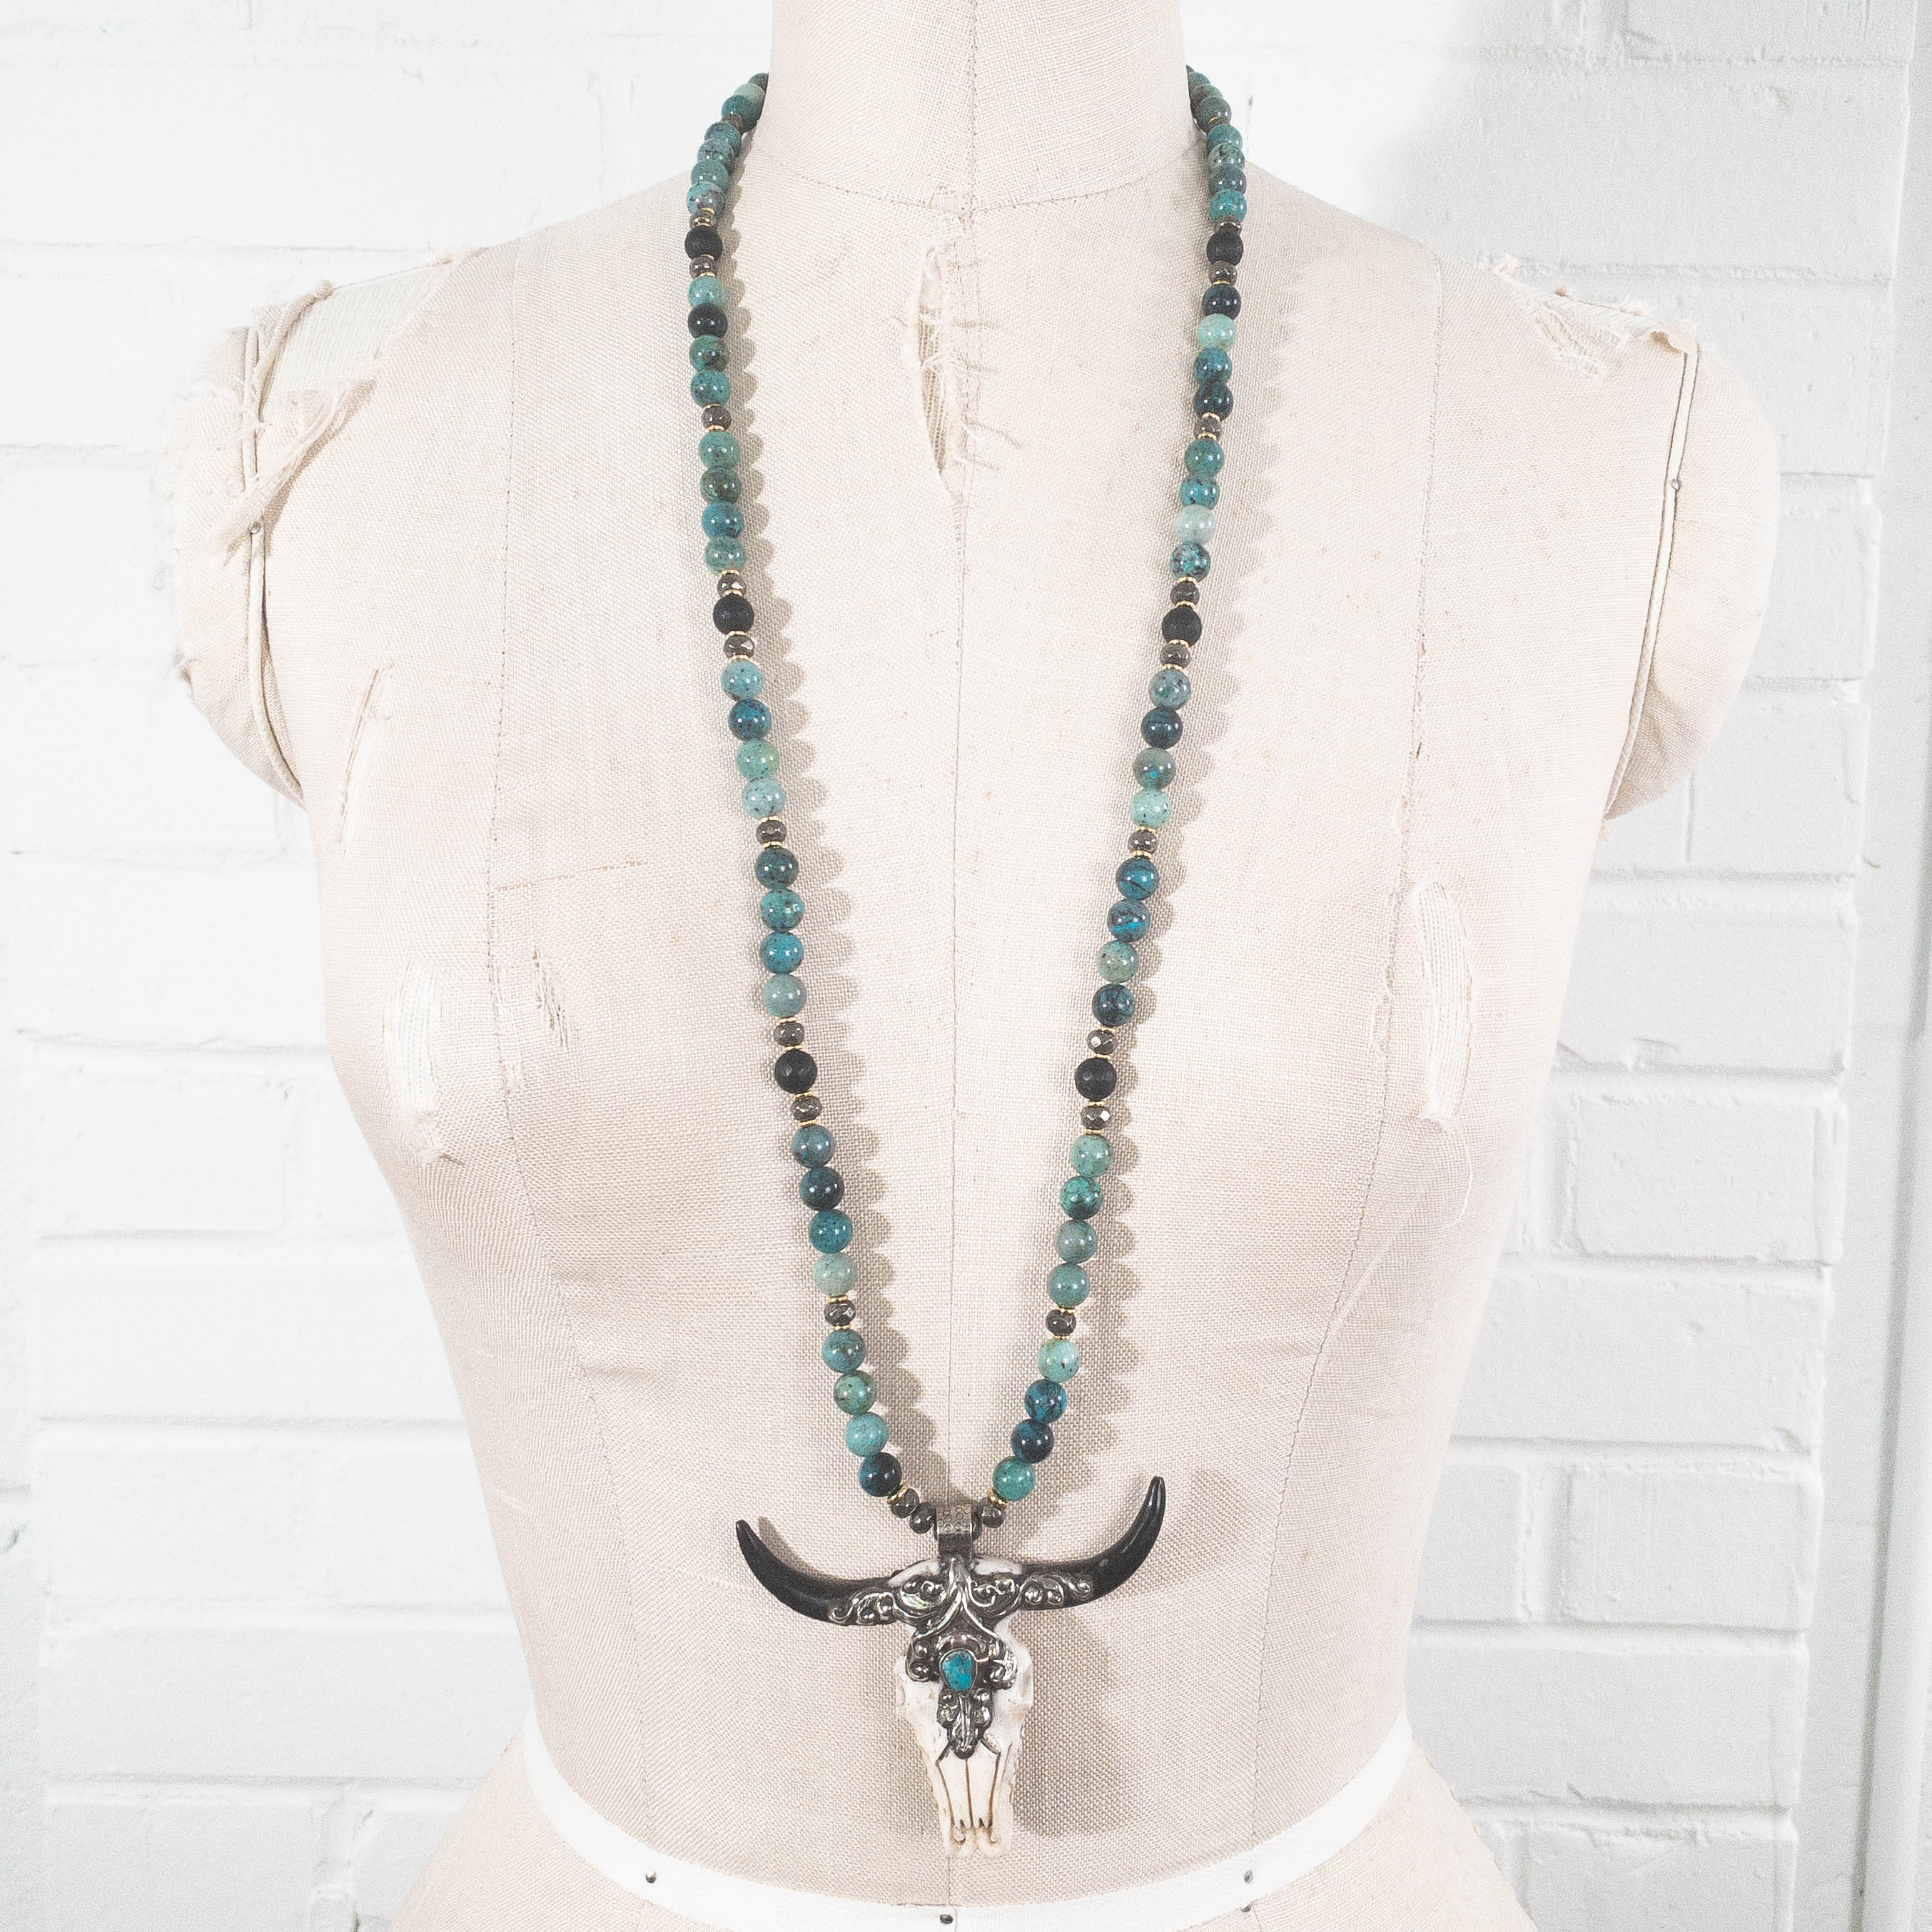 Turquoise Longhorn Skull Pendant on Azurite & Matte Onyx Necklace